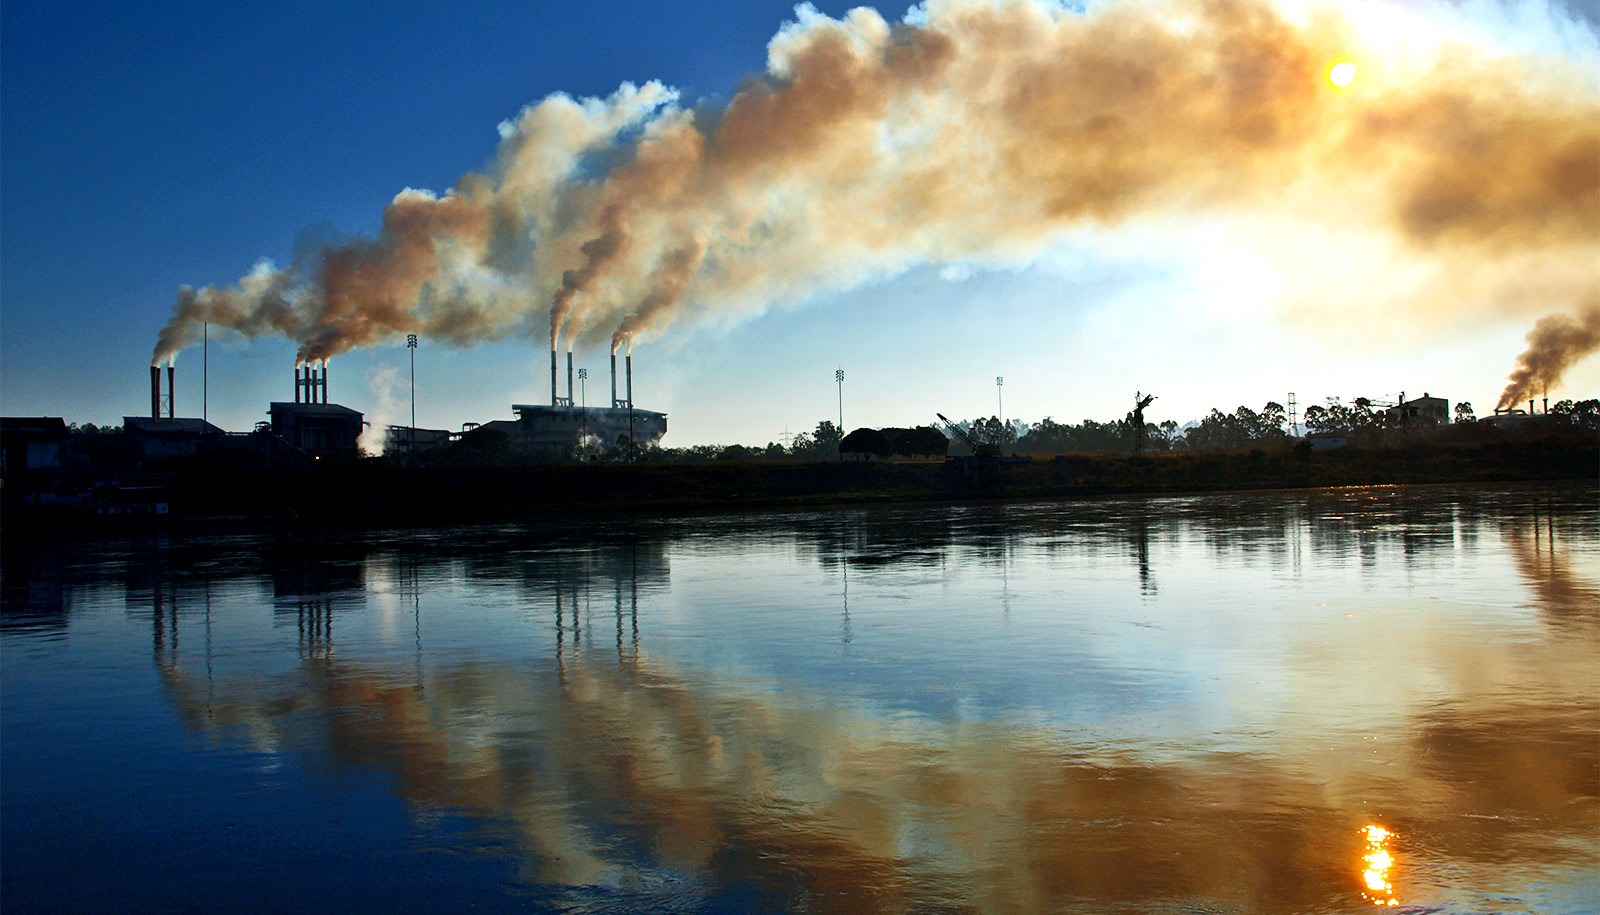 Air Pollution Causes Birth Defects And Fetal Death In Rats